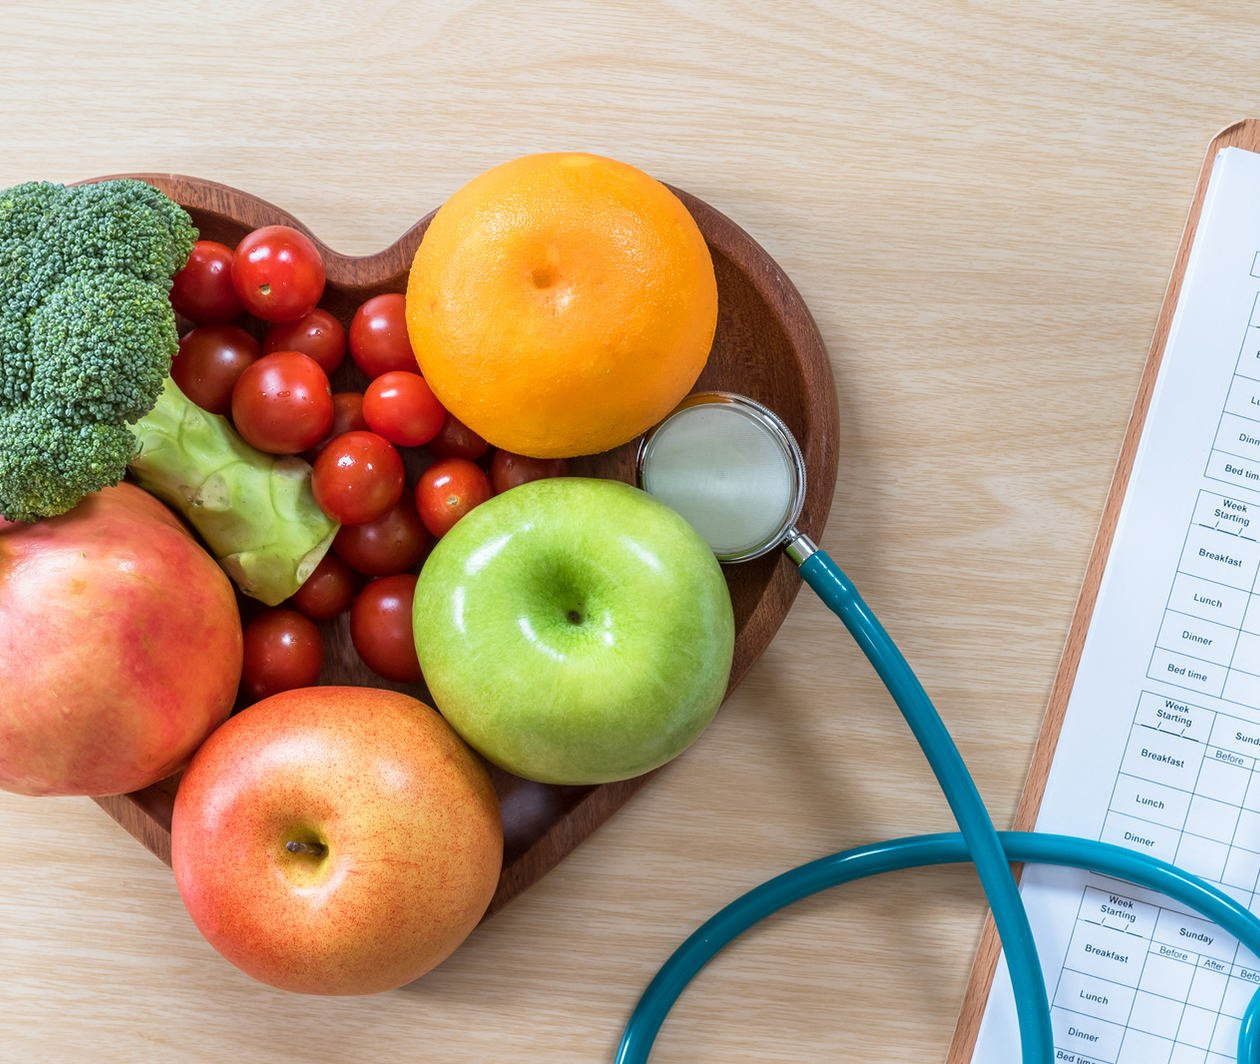 Eating to Live Well - Online Nutrition Course - FutureLearn